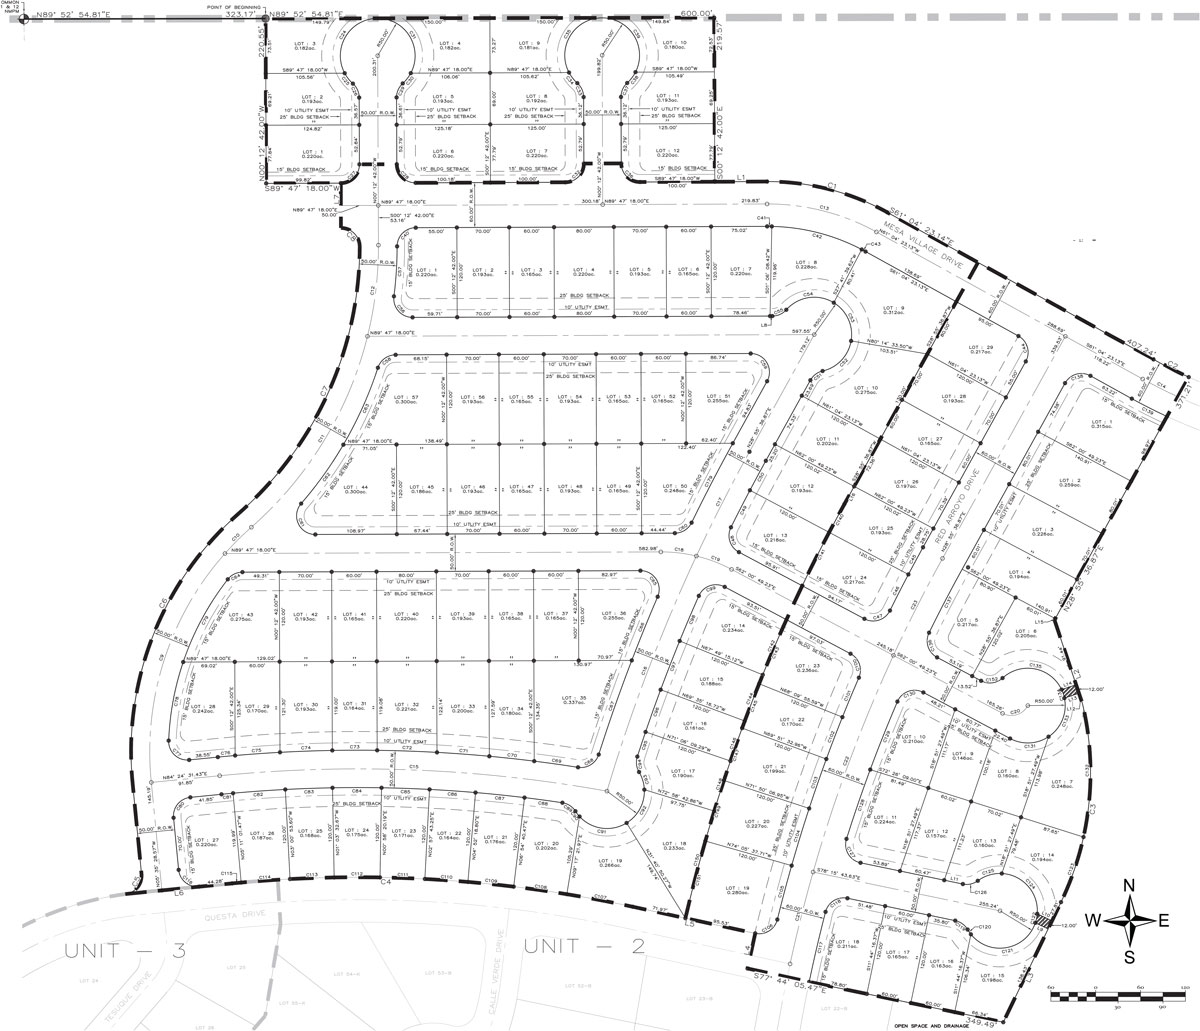 Proposed Phase IV Residential Development